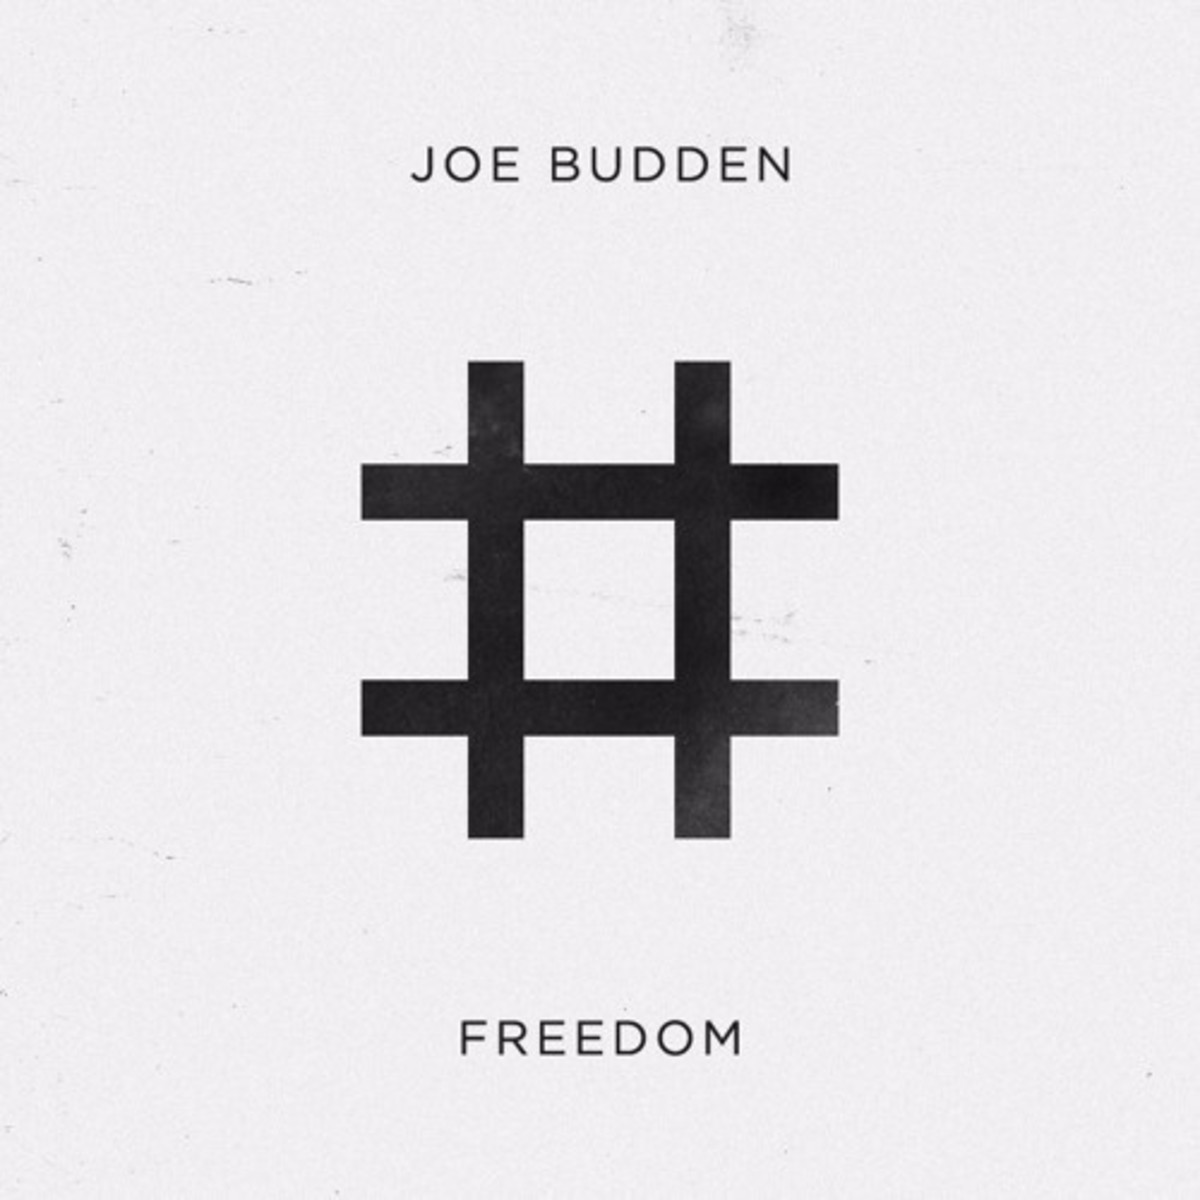 joe-budden-freedom.jpg